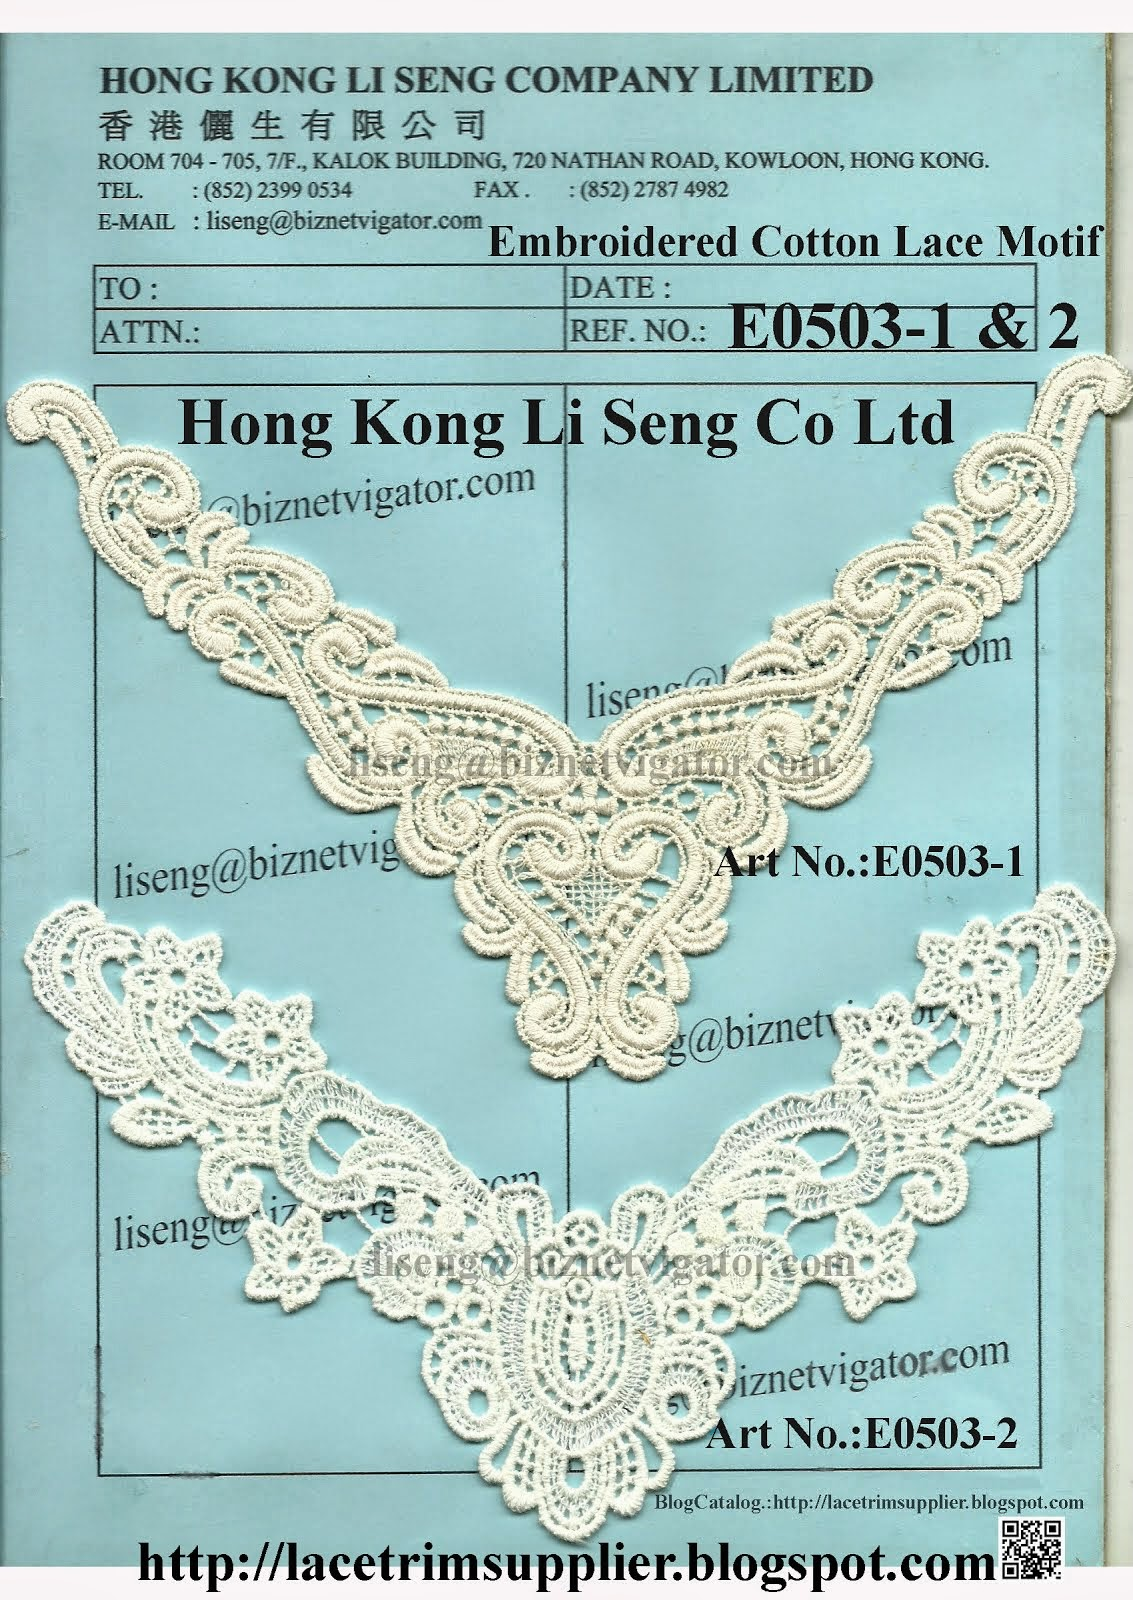 Embroidered Cotton Lace Motif Manufacturer and Supplier - Hong Kong Li Seng Co Ltd